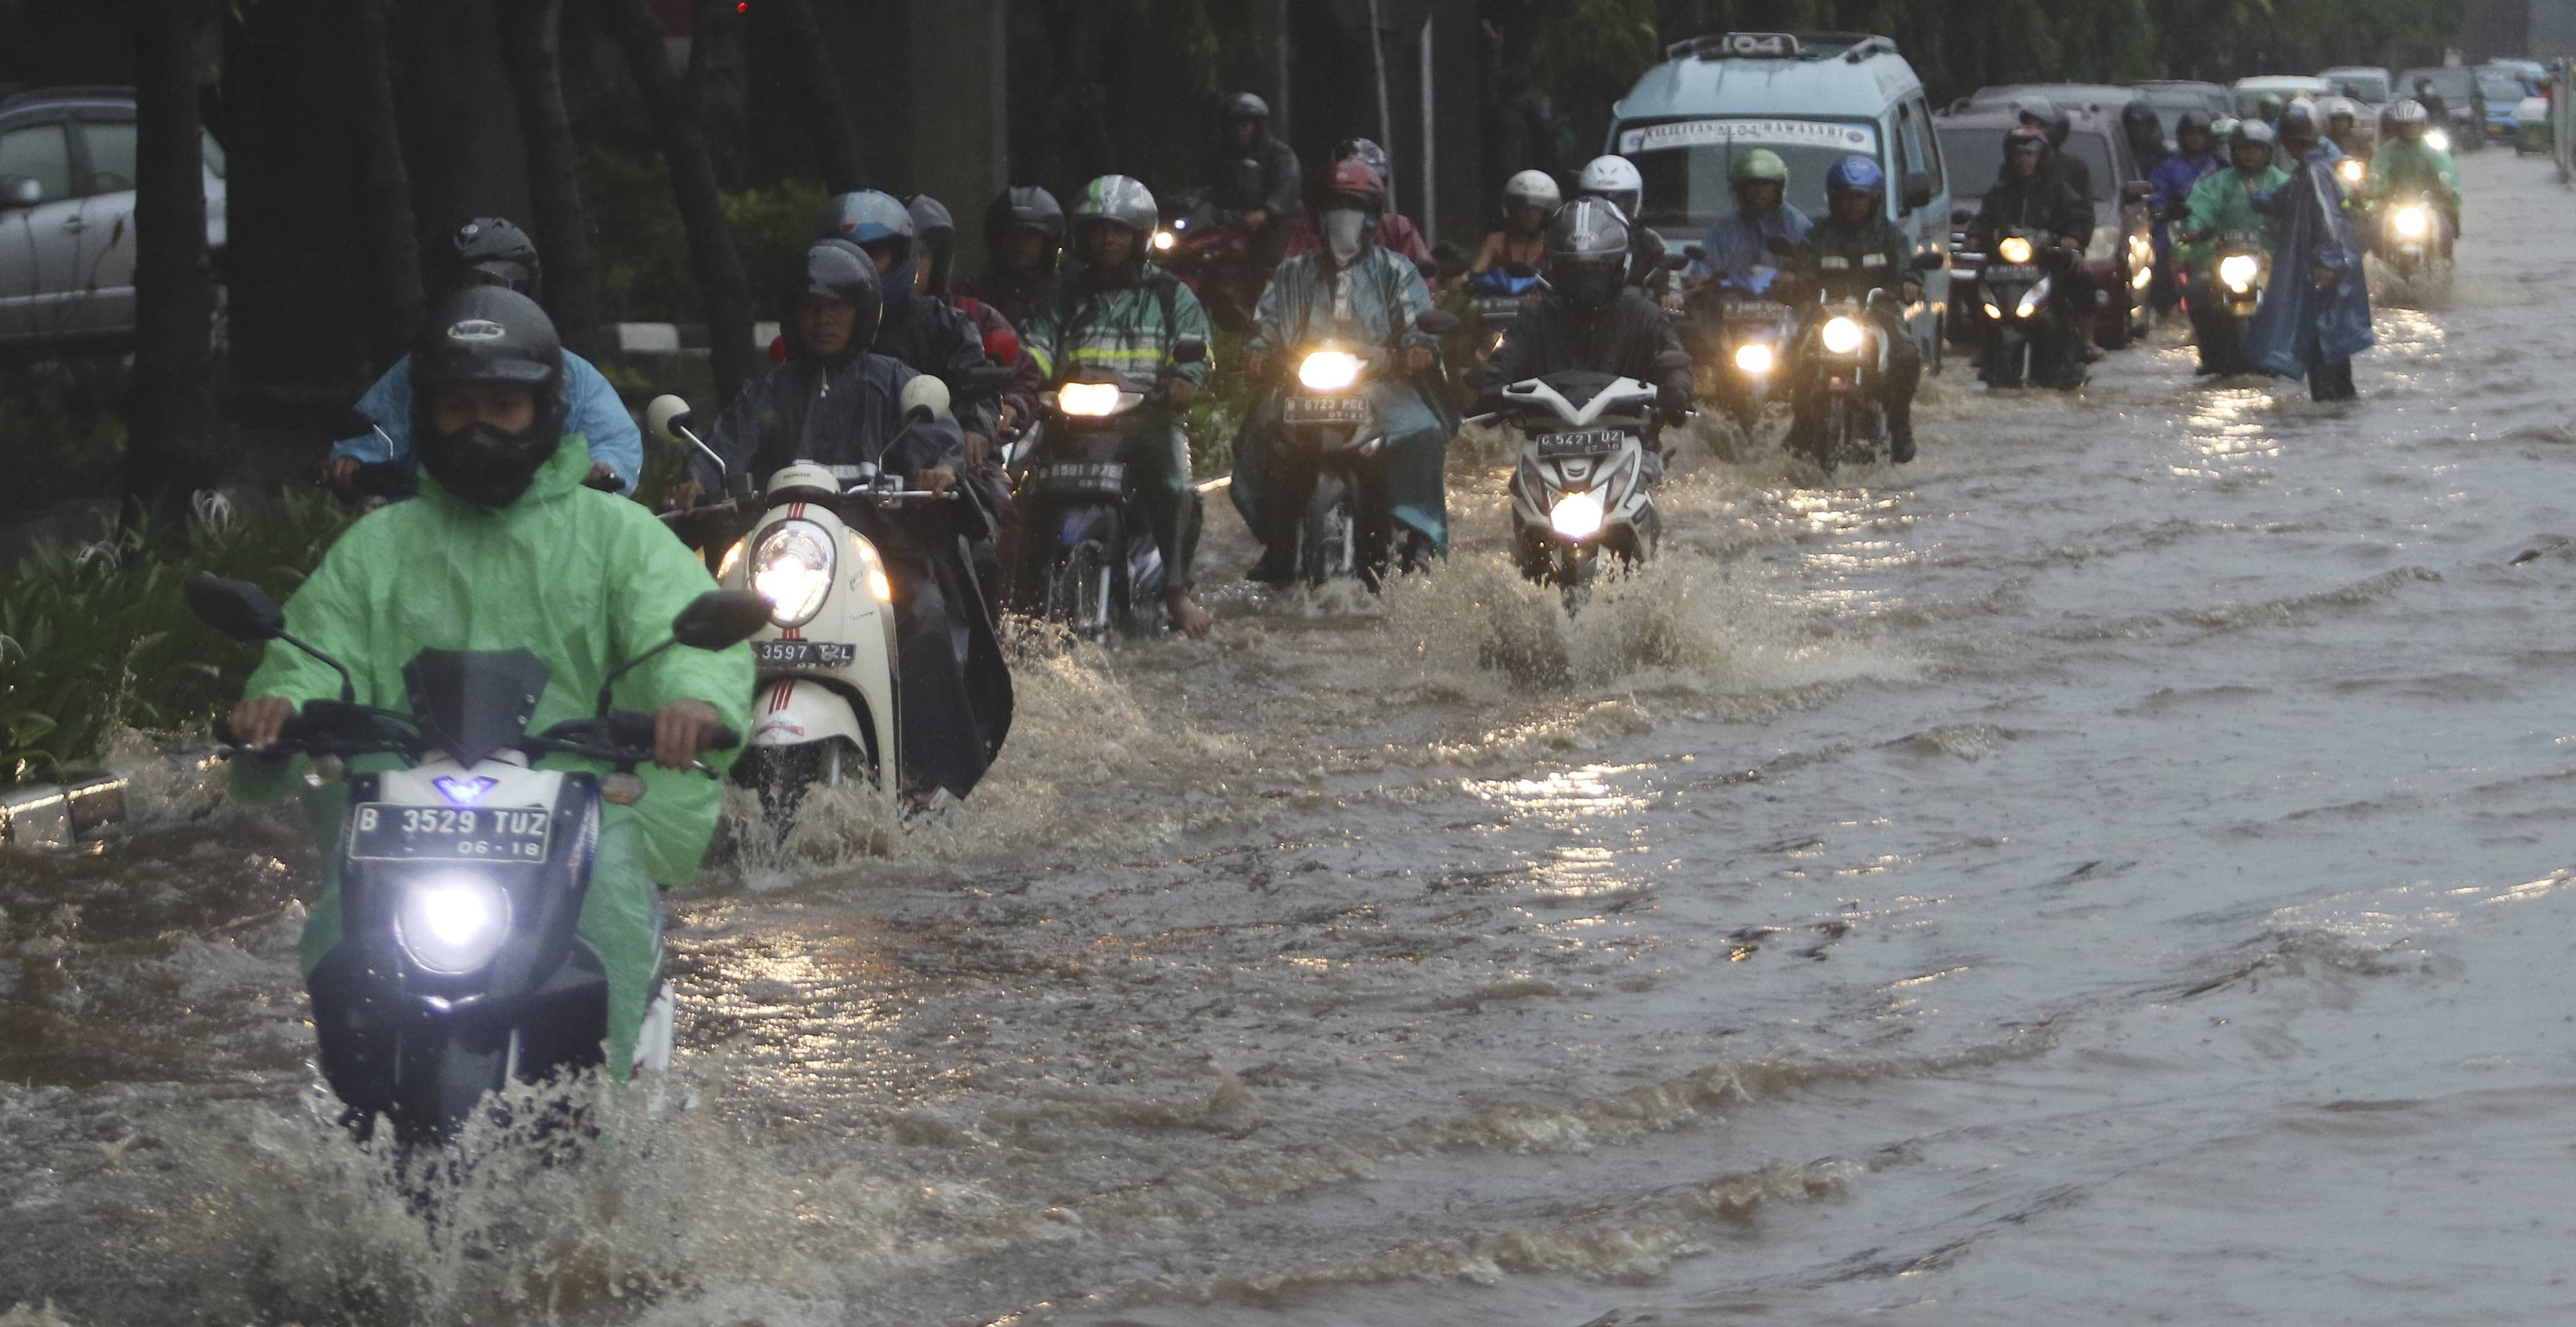 Motorcyclists pass floodwaters in easter Jakarta in December (Photo: Eko Siswono Toyudho/Getty)